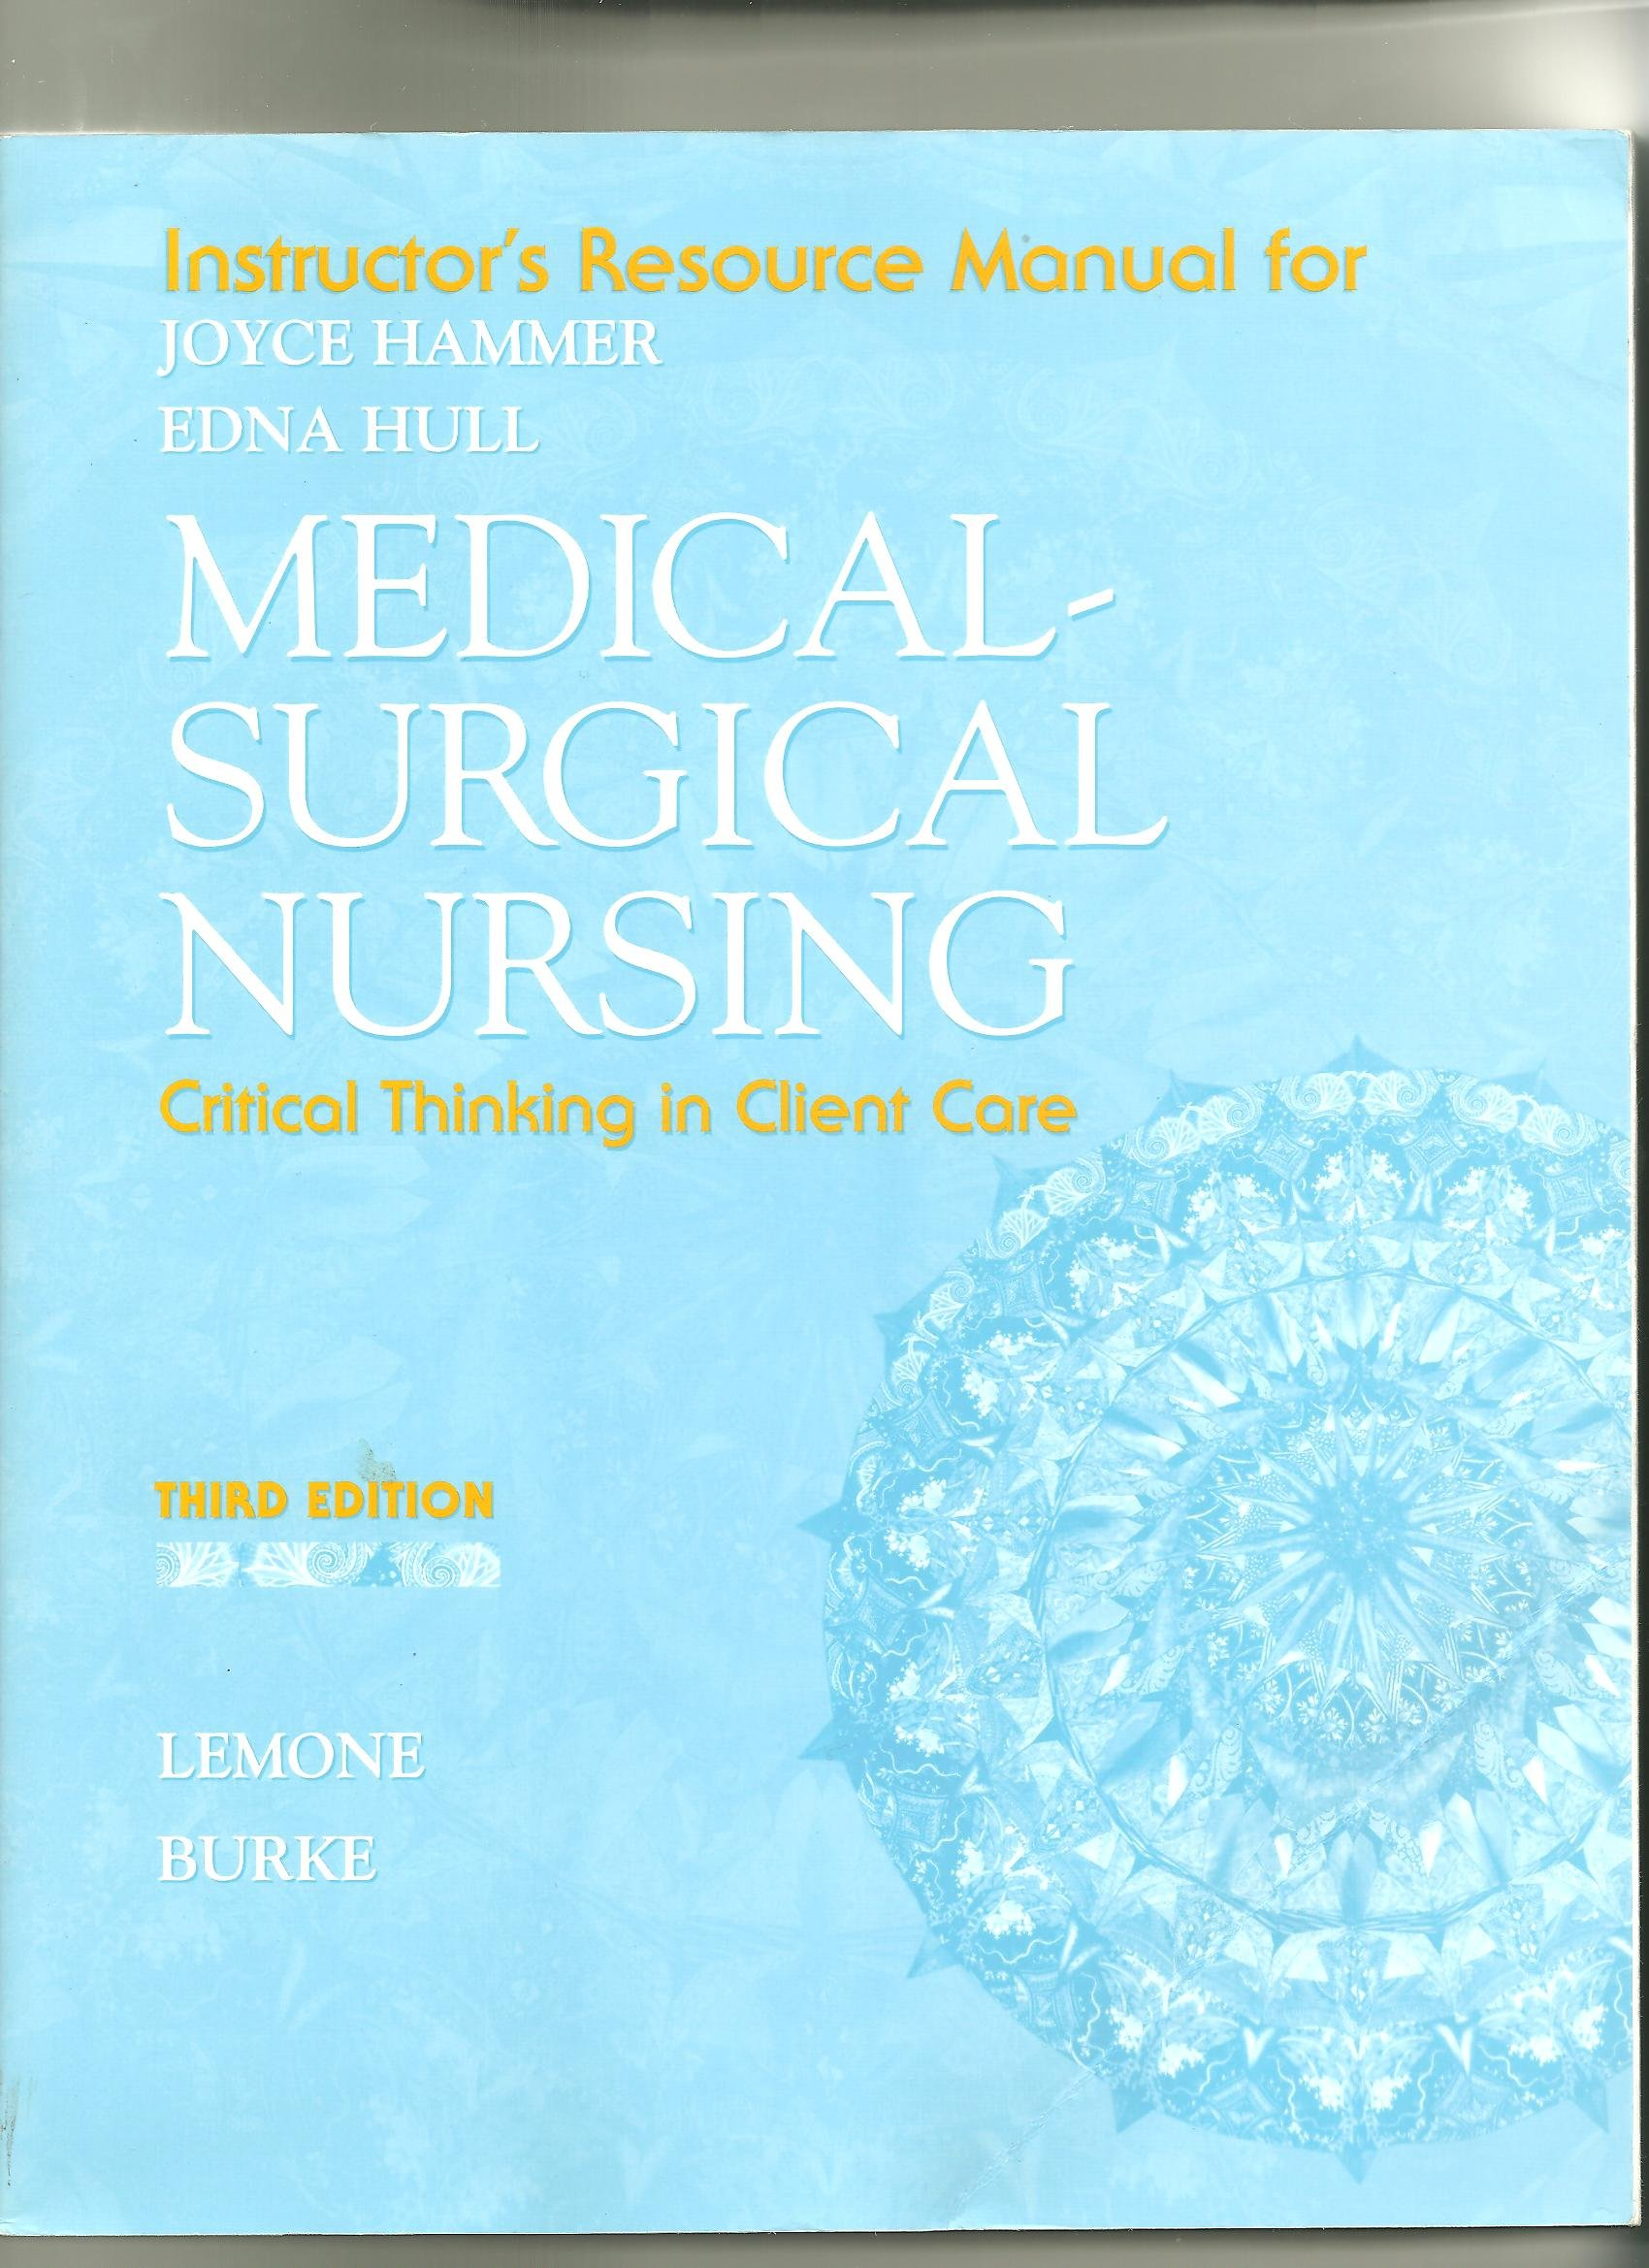 Instructor's Resource Manual for Medical Surgical Nursing: Critical  Thinking in Client Care: Joyce Hammer, Edna Hull: 9780131432345:  Amazon.com: Books